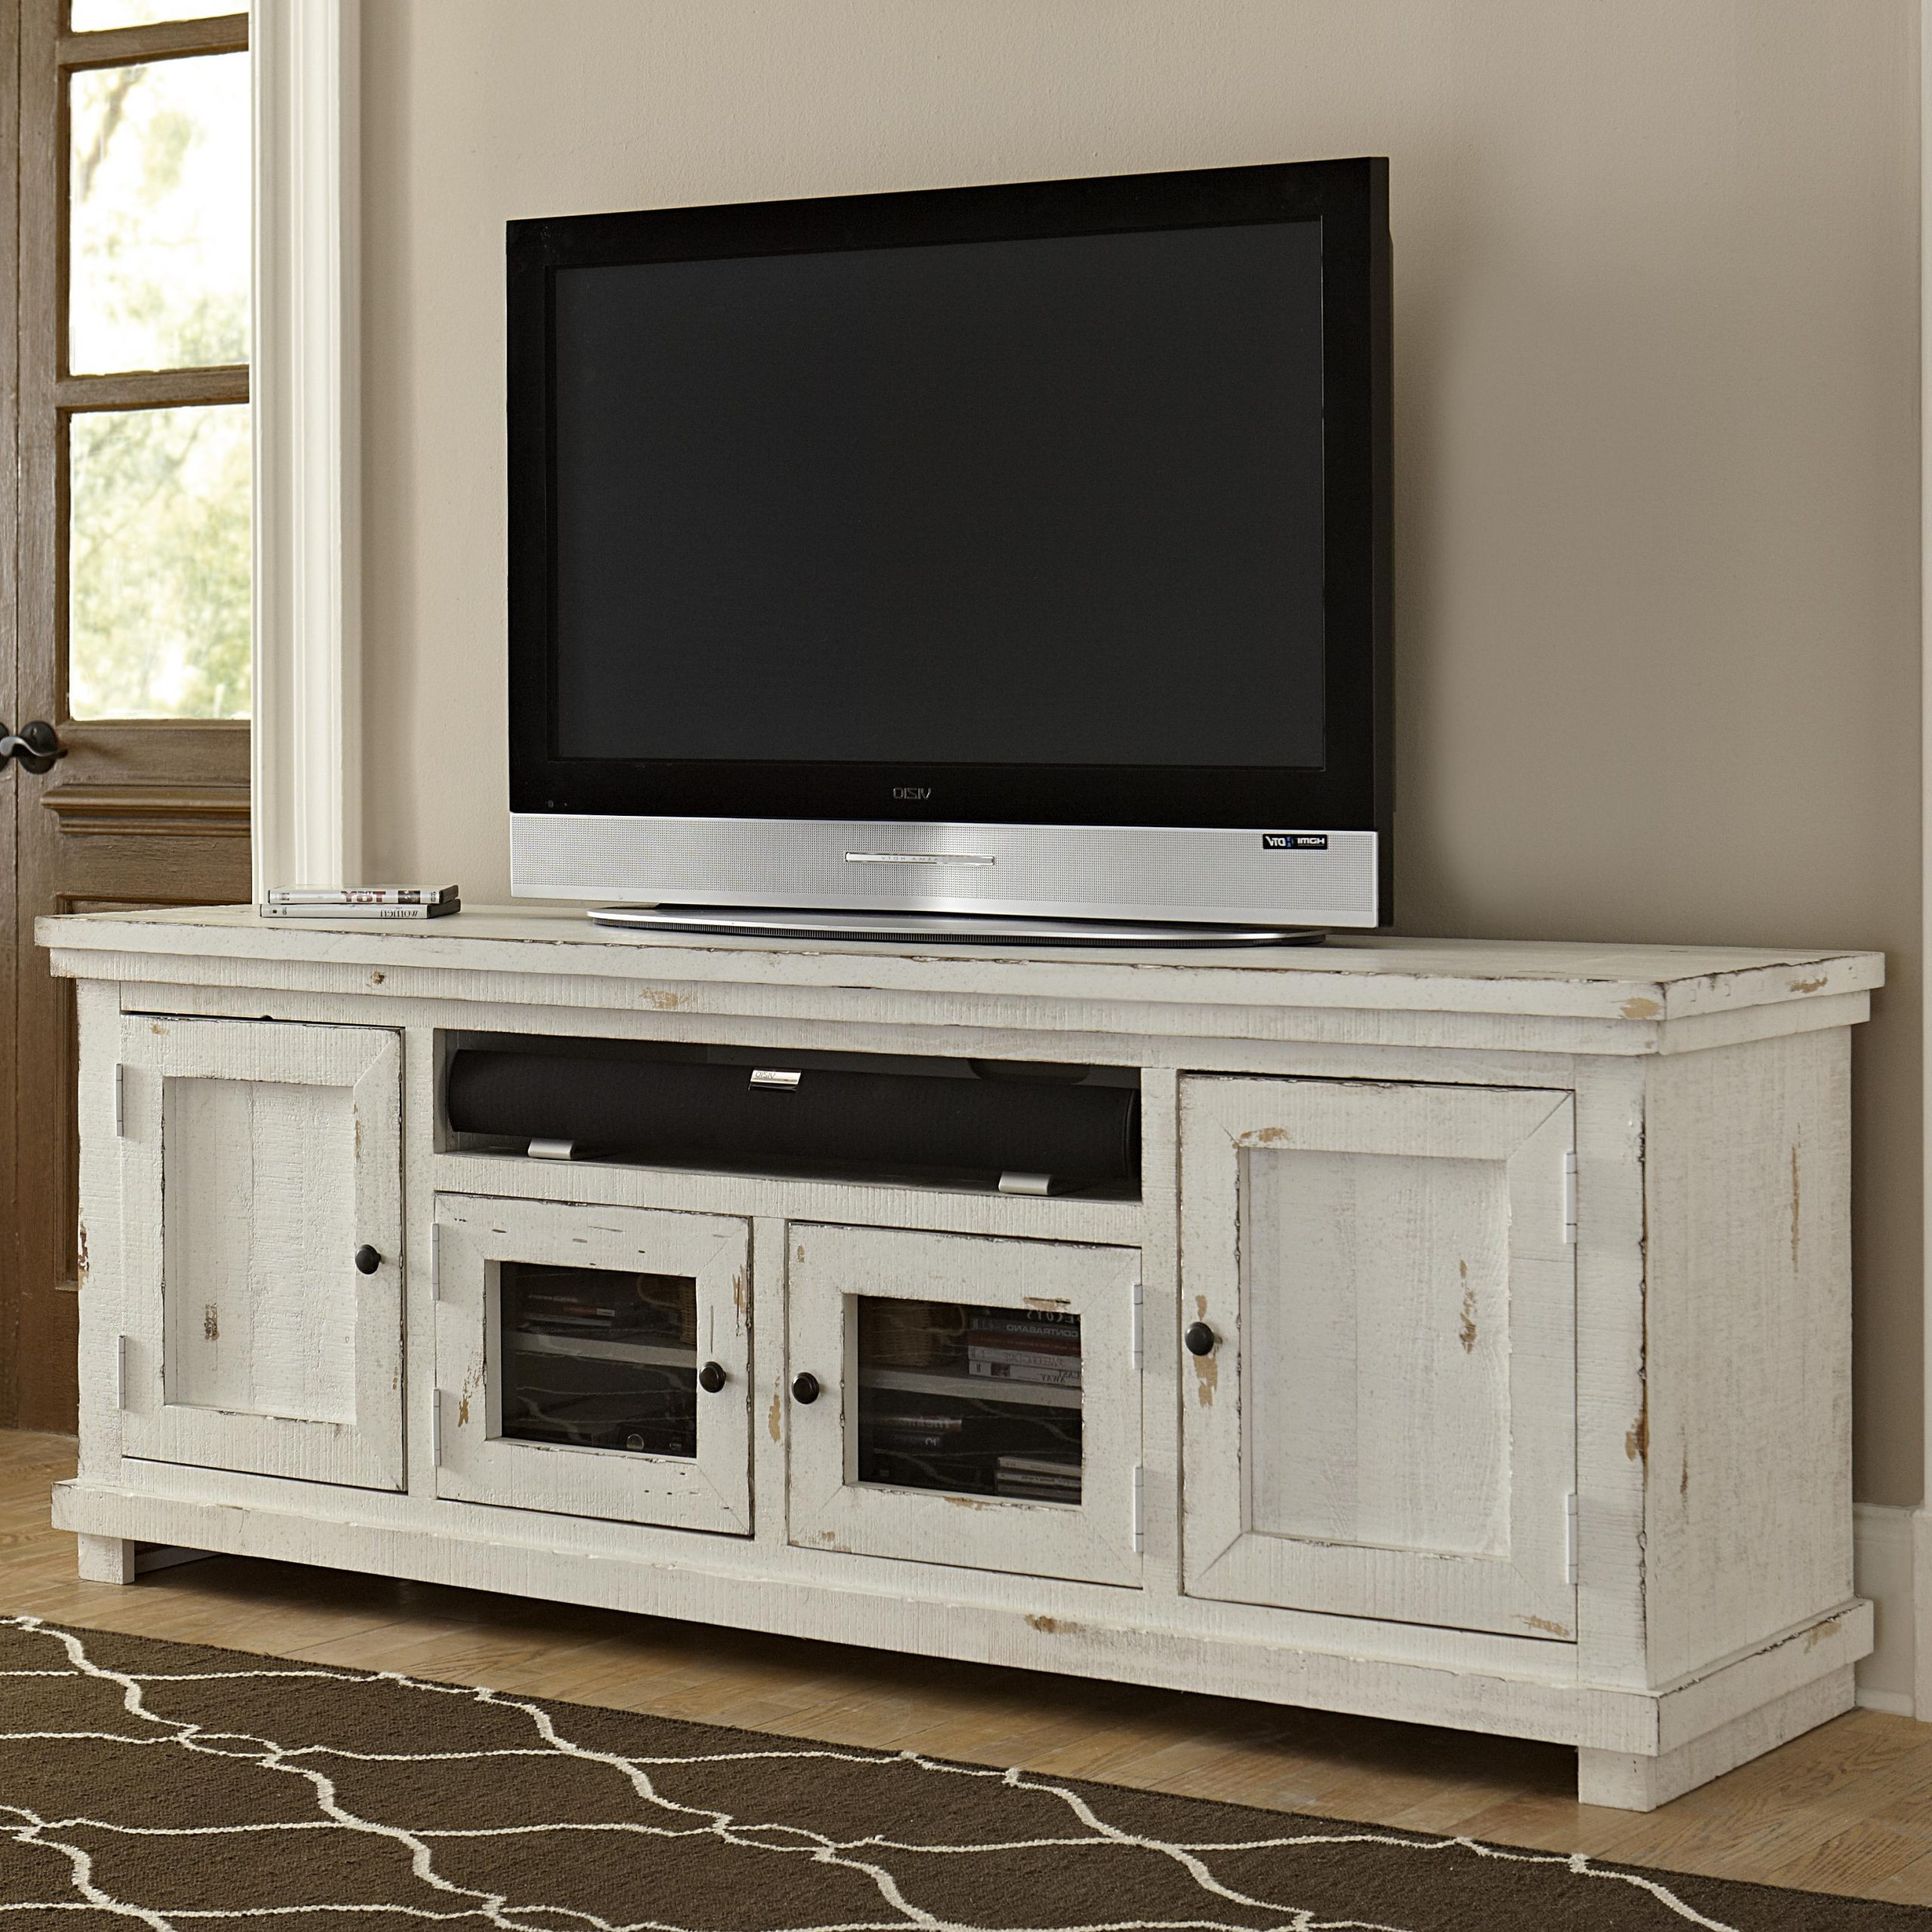 """Progressive Furniture Willow Large 74"""" Distressed Pine For Recent Rustic Grey Tv Stand Media Console Stands For Living Room Bedroom (View 8 of 10)"""